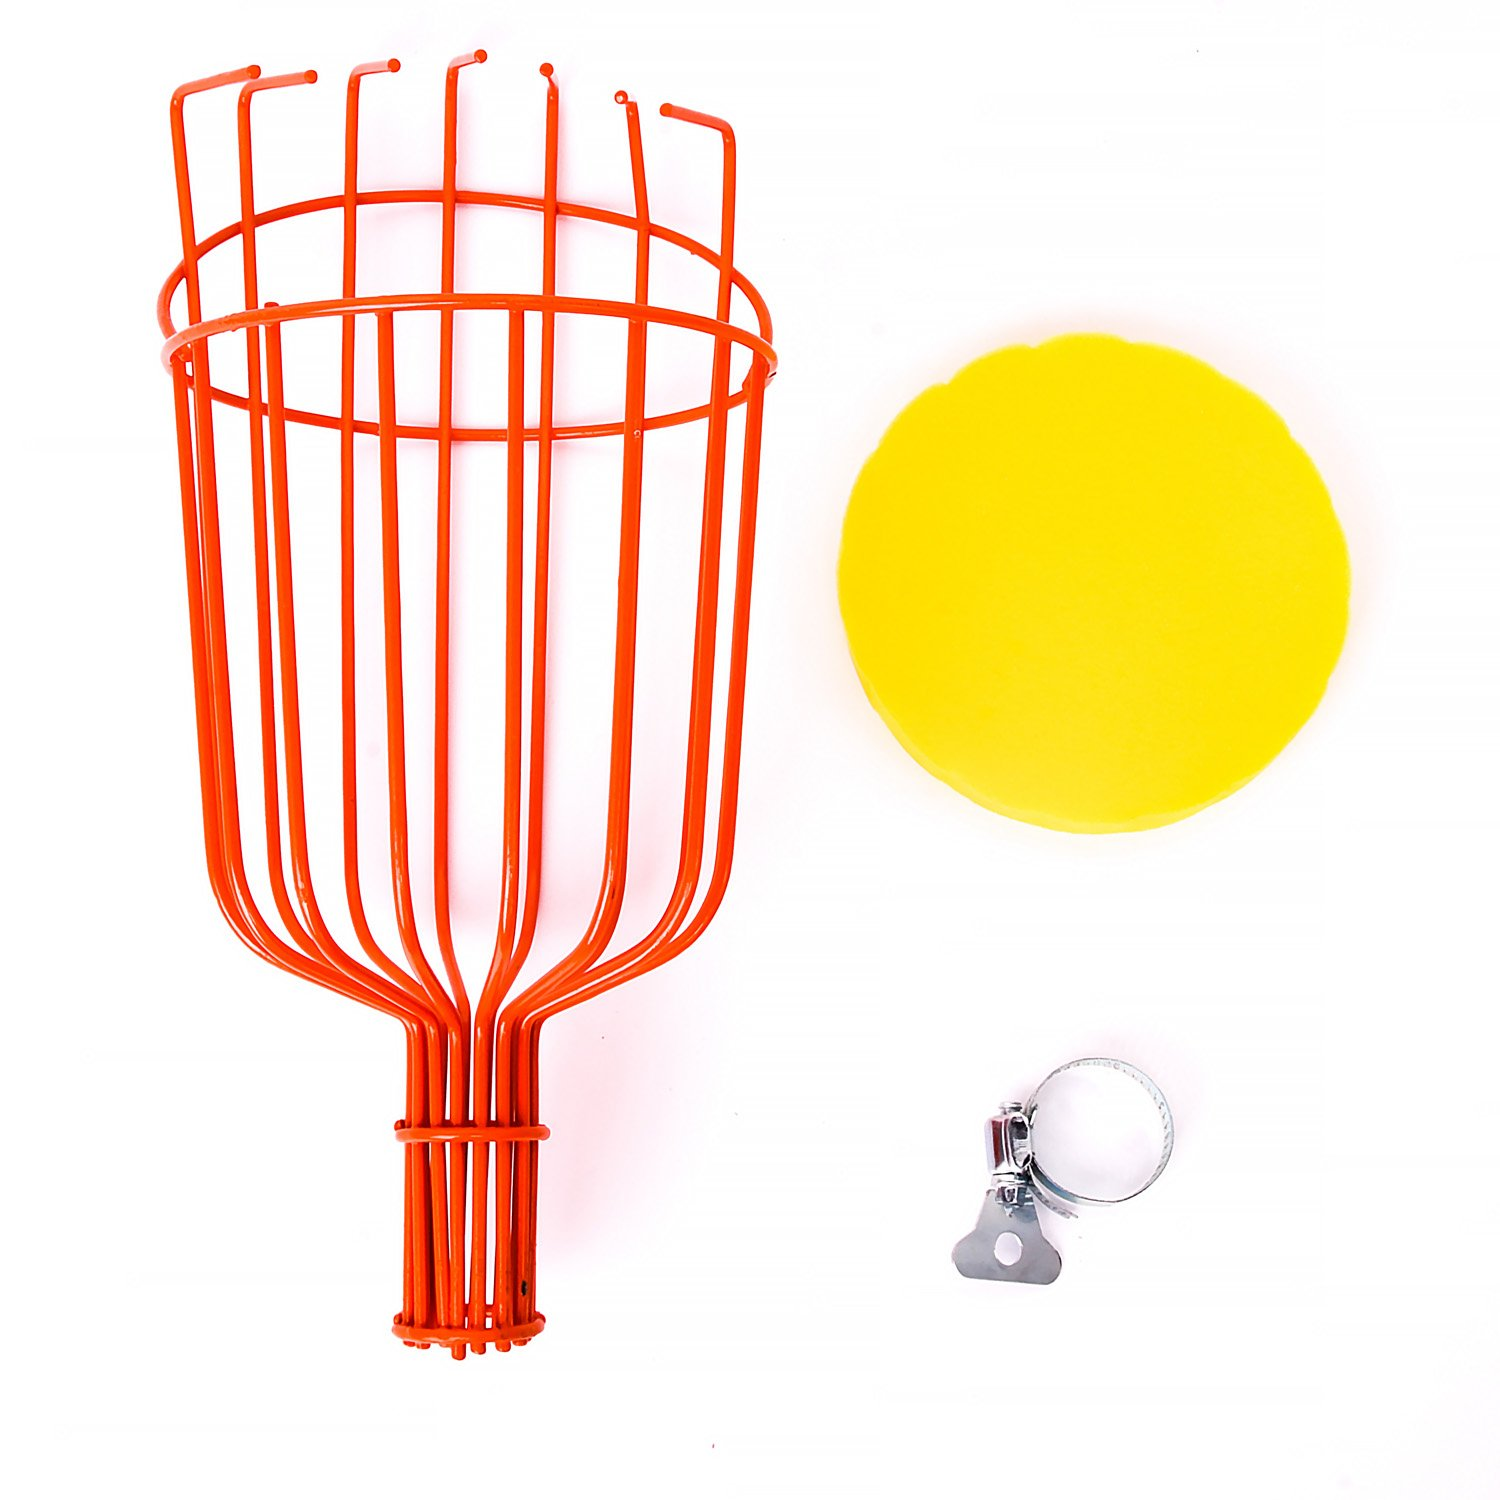 Professional Metal Catcher Basket Fruit Picker Tool F2C Fruit Picking Equipment for Getting Fruits Extra Lightweight Ideal for Picking Oranges Apple Avocado or any Kinds of Fruits